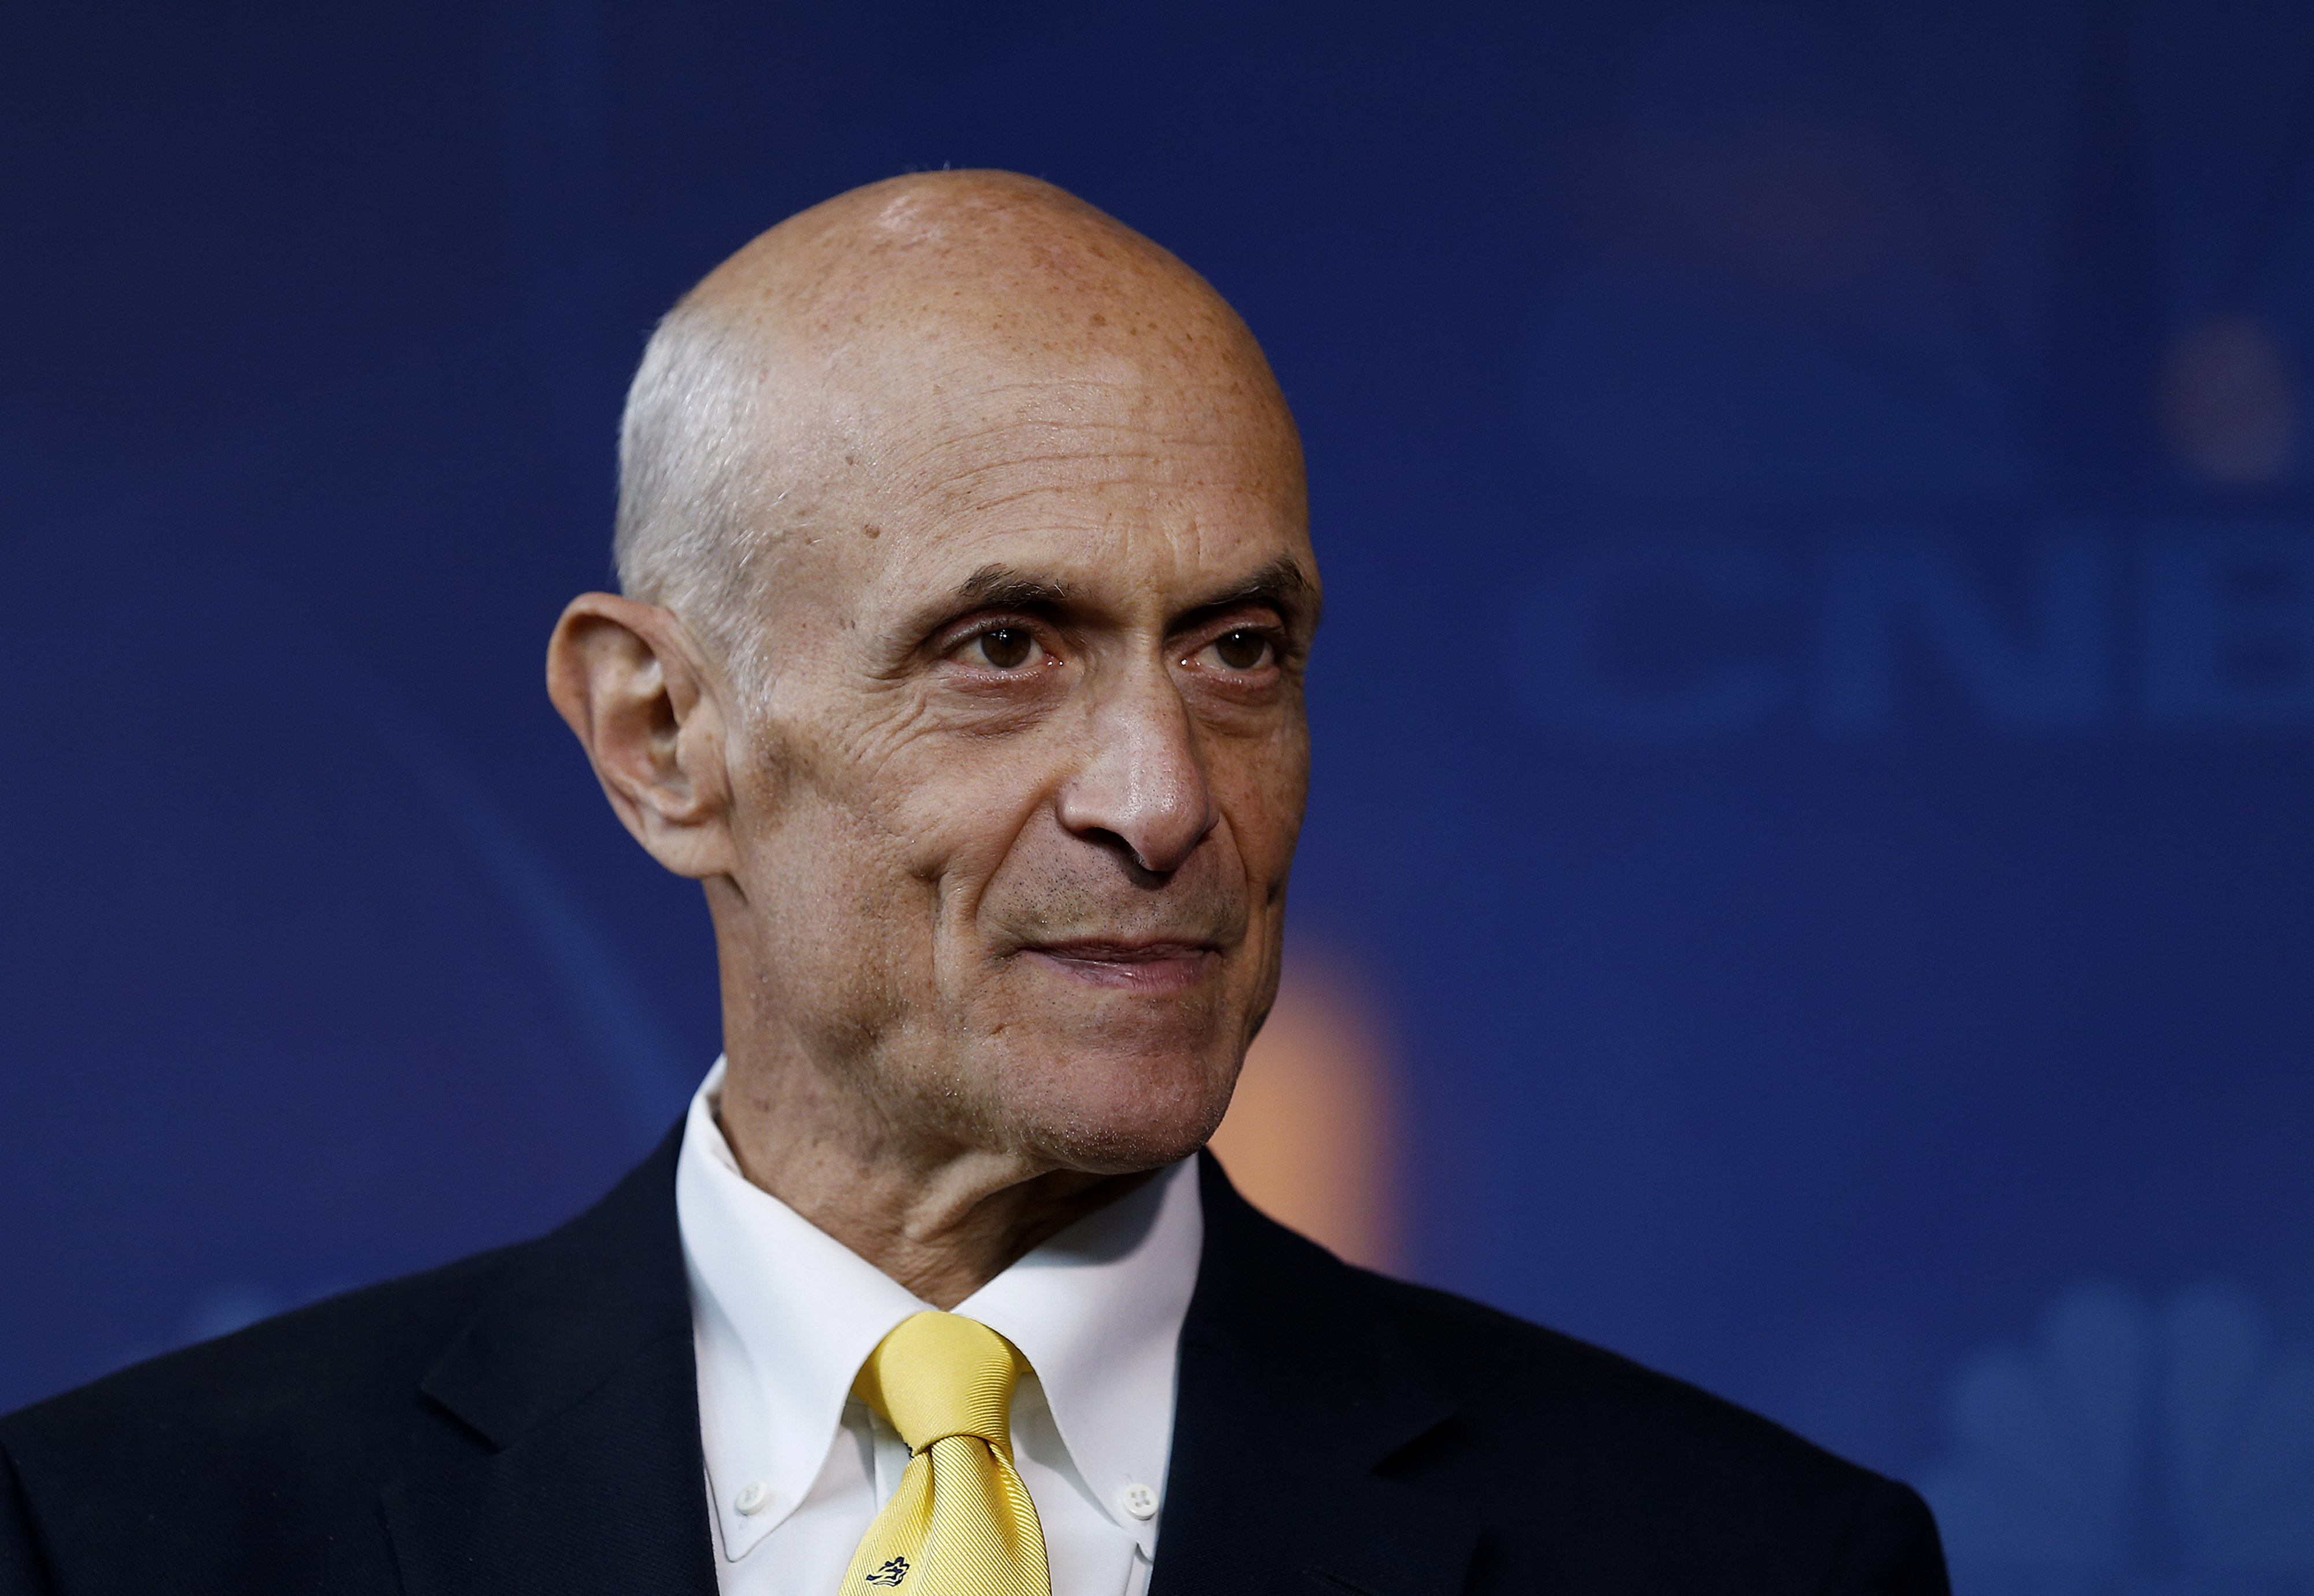 Michael Chertoff speaks during an interview in Houston, Texas on March 5, 2014.